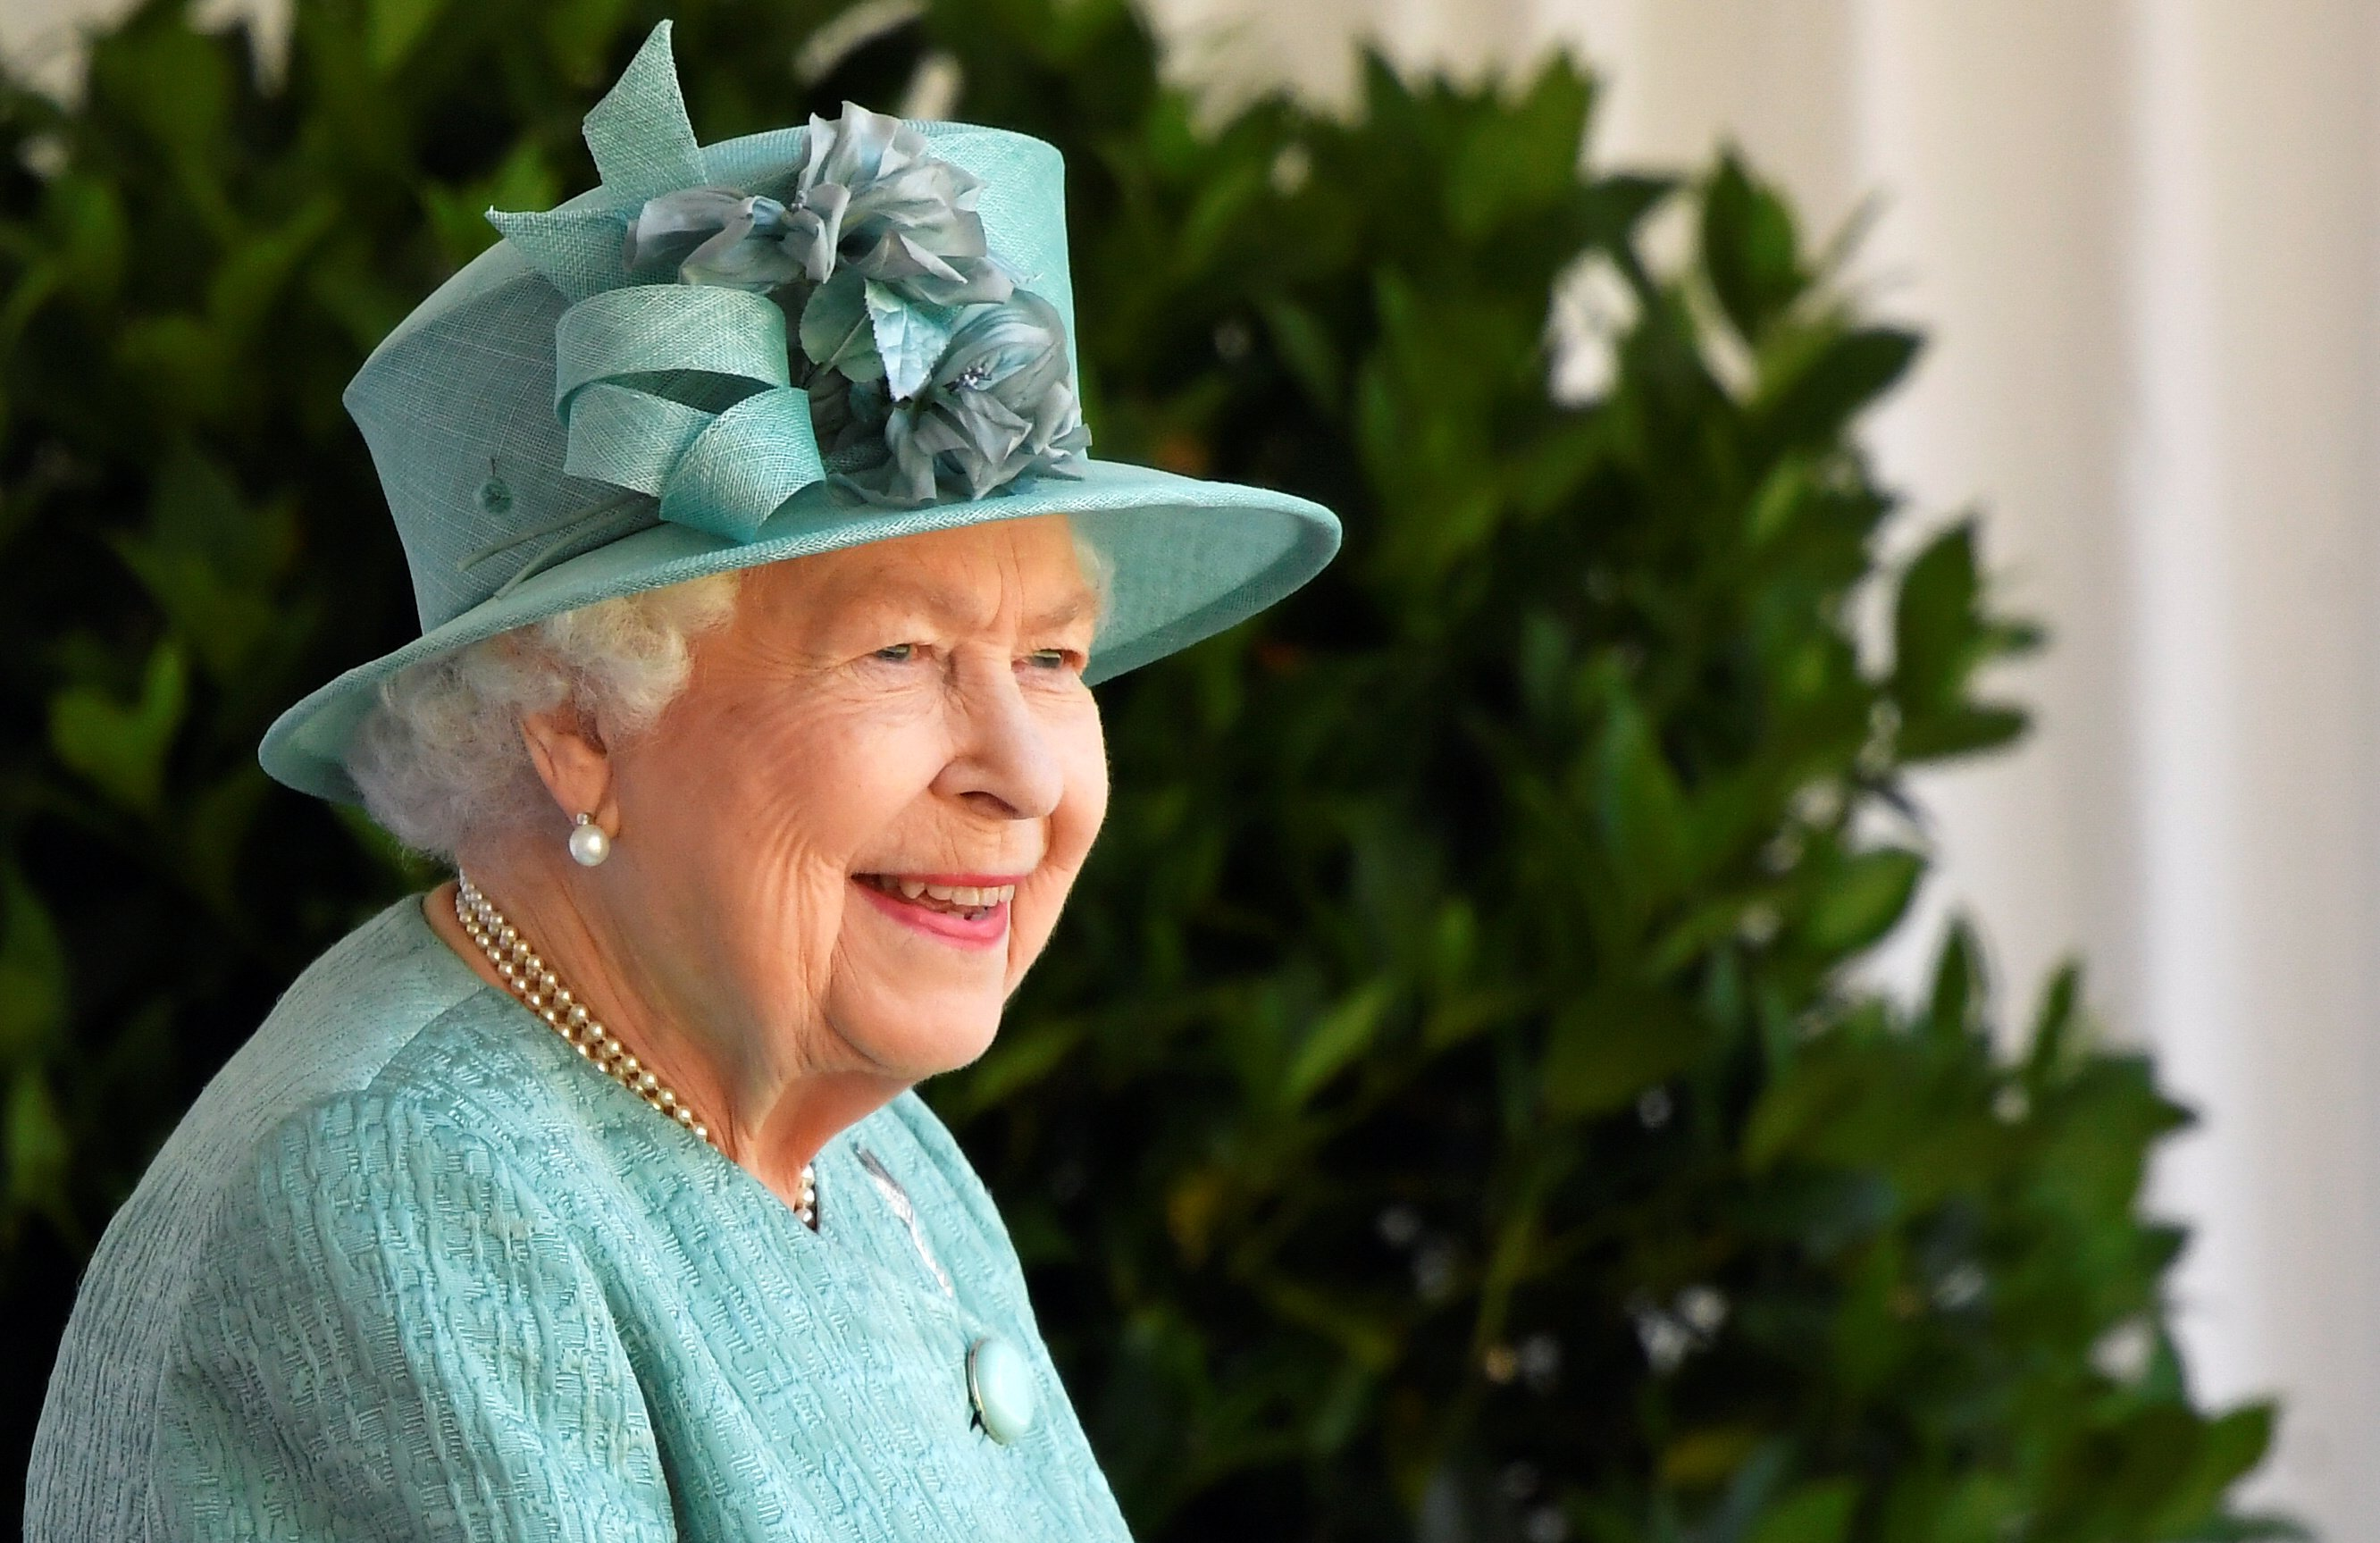 Queen Elizabeth II attends her birthday ceremony at Windsor Castle in Windsor, England on June 13, 2020 | Photo: Getty Images